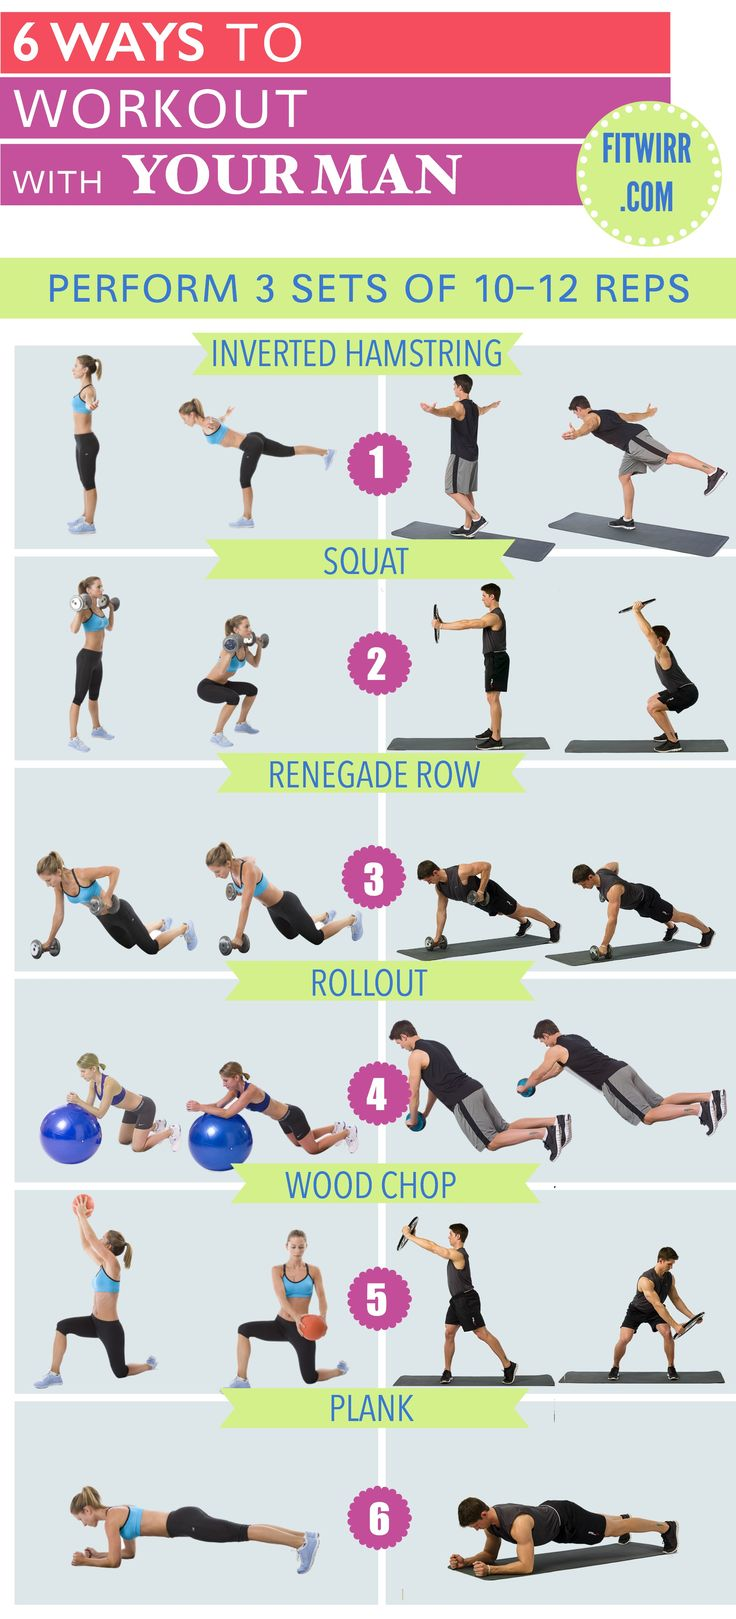 6 Exercises you can do with your man and get fit together. Familiar moves for you and advanced ones for your man.